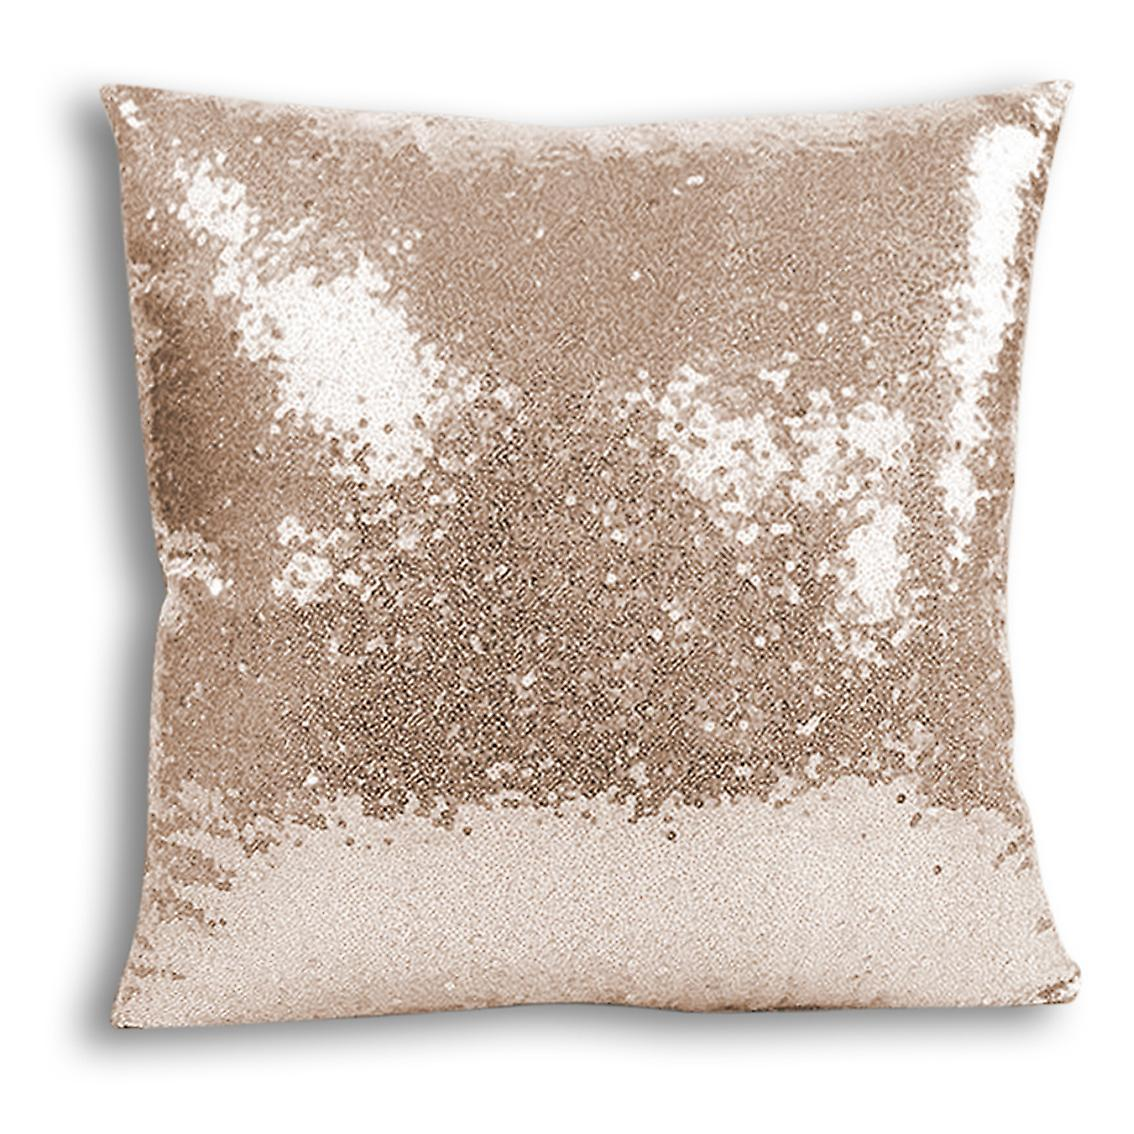 Cover Decor For tronixsUnicorn Printed I 14 Home CushionPillow Design Champagne With Inserted Sequin yY76vmIfbg